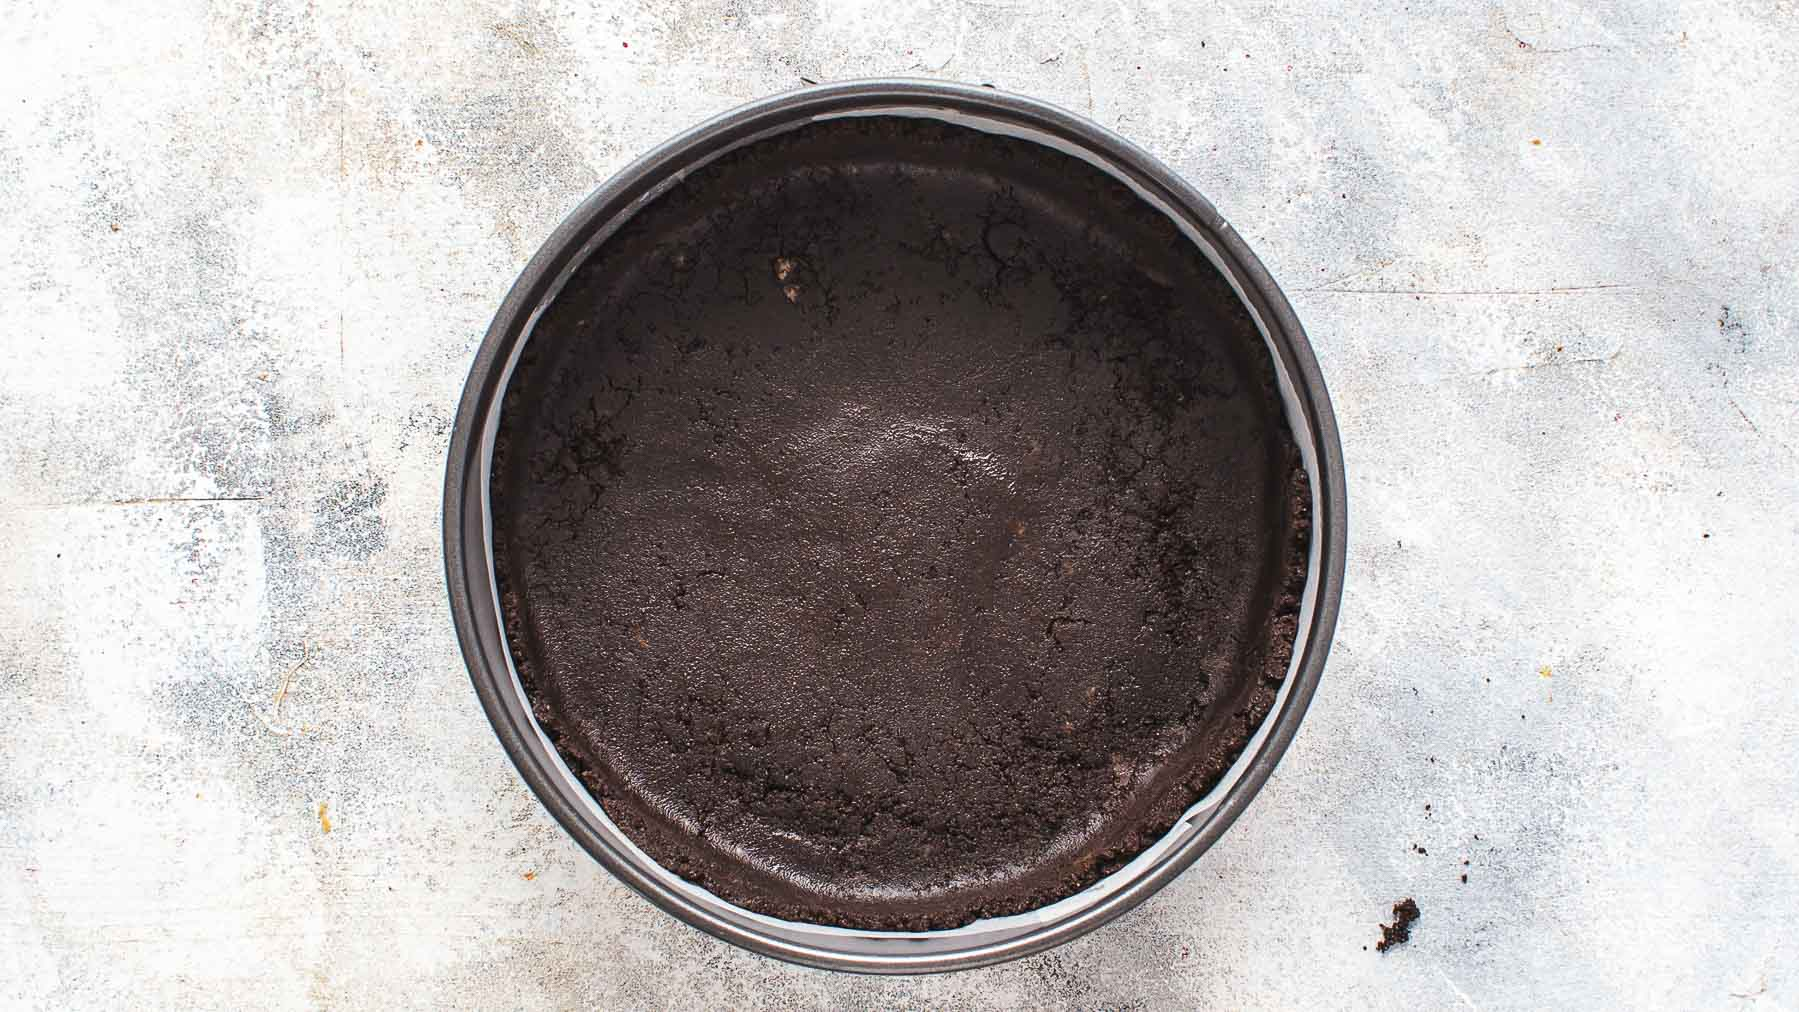 unbaked oreo crust in springform pan